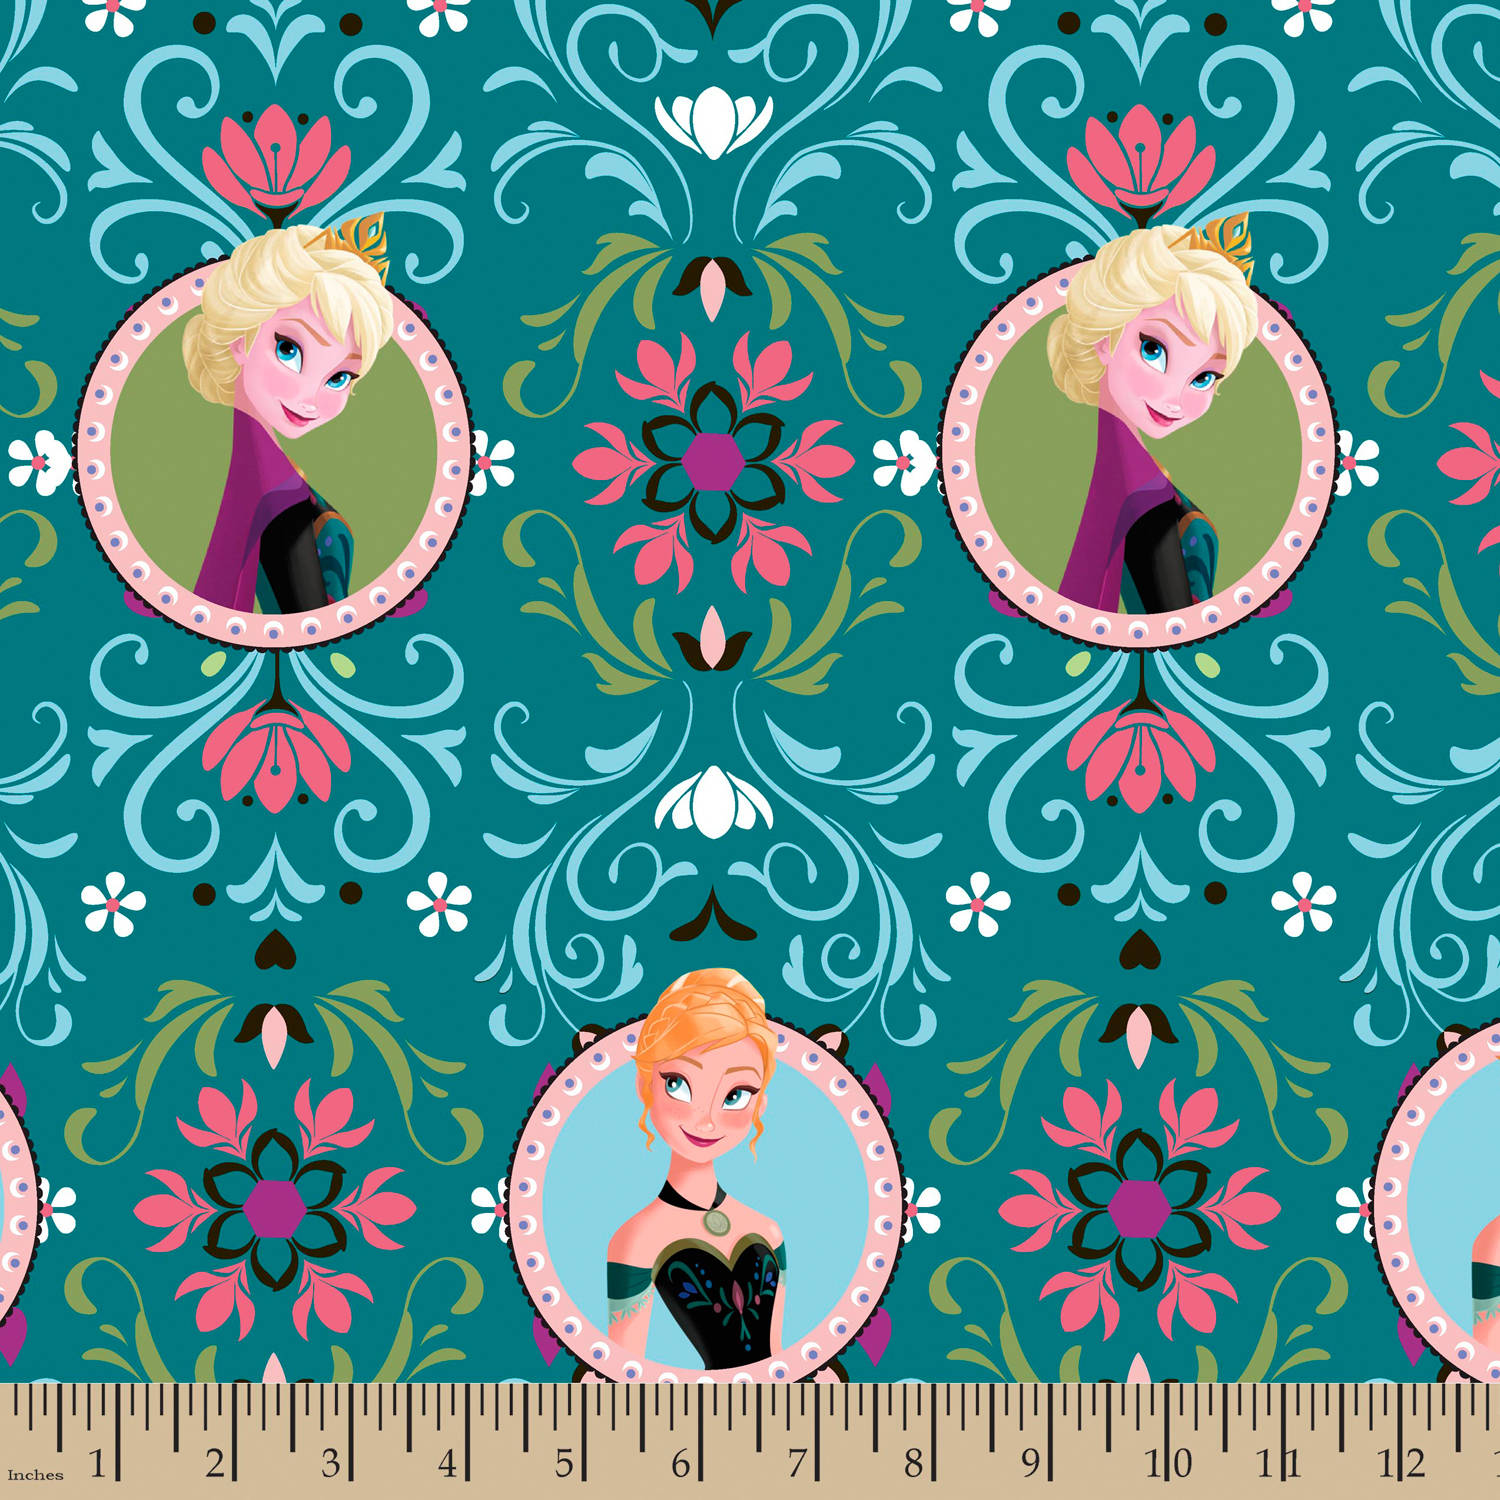 "Disney Frozen Anna & Elsa Framed, Fleece, Teal, 59/60"" Width, Fabric by the Yard"